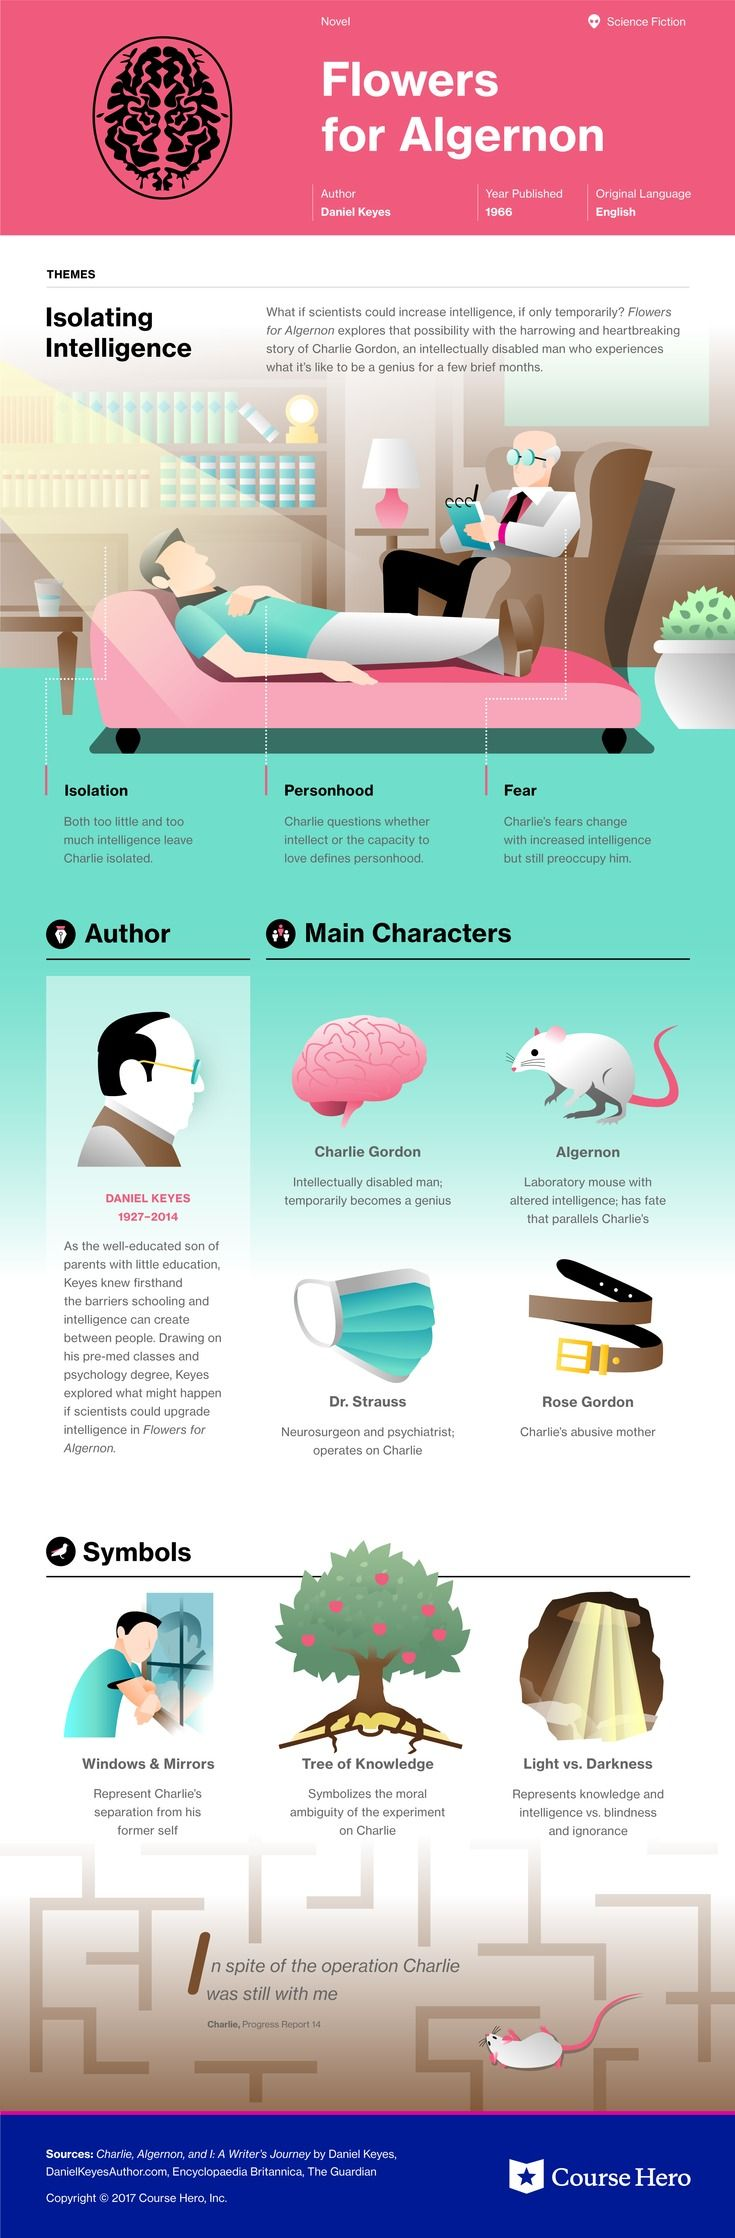 This @CourseHero infographic on Flowers for Algernon is both visually stunning and informative!